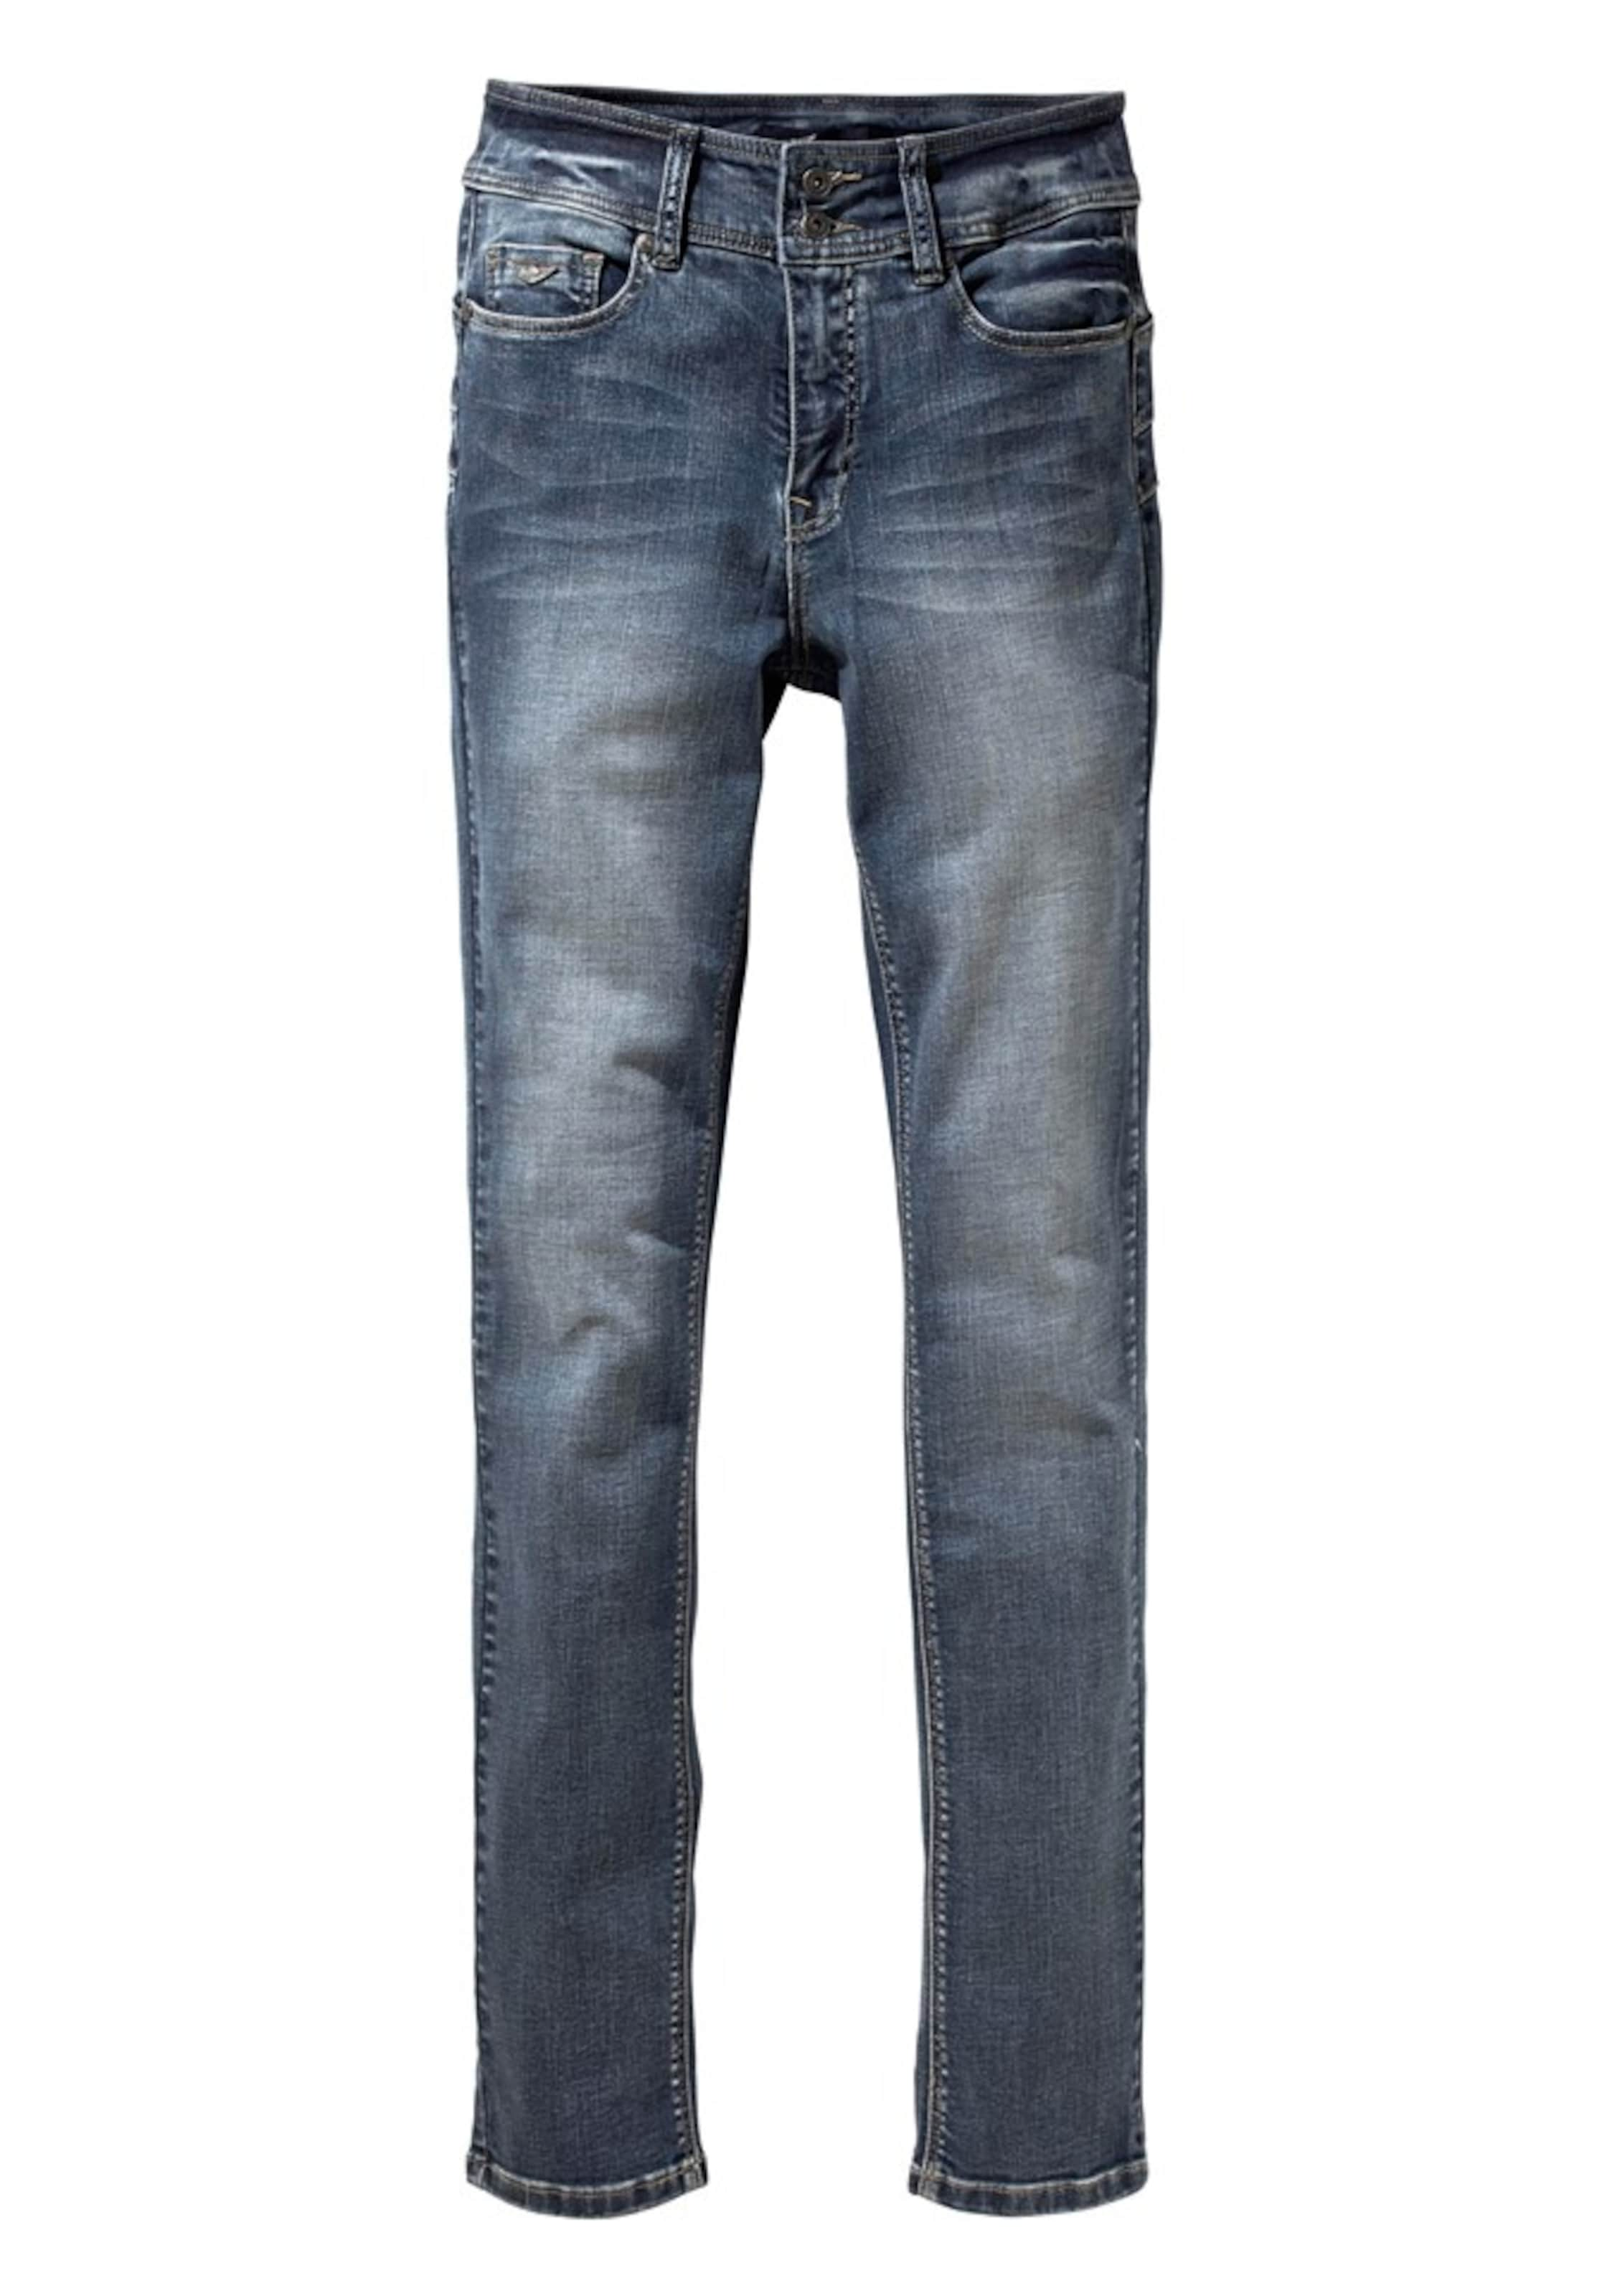 Arizona Röhrenjeans Arizona Denim In Röhrenjeans Blue 8nOPwk0